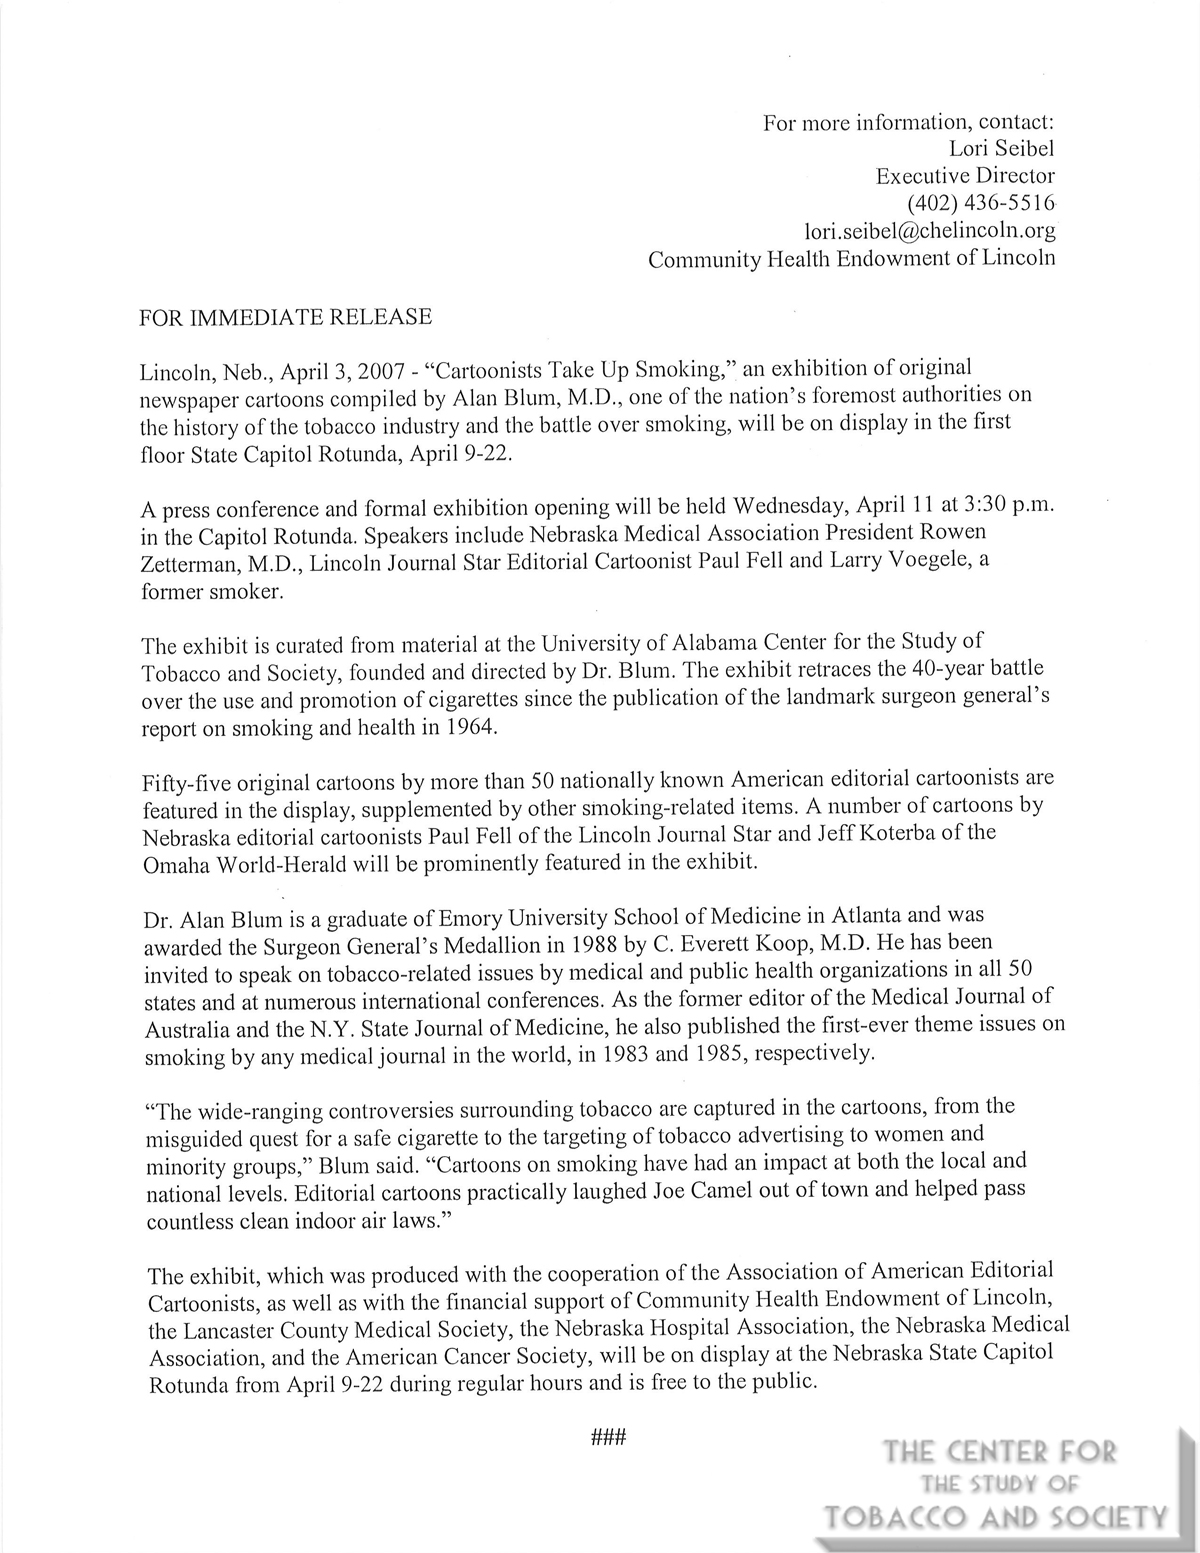 2007 04 03 Lori Seibel Community Health Endownment of Lincoln Press Release